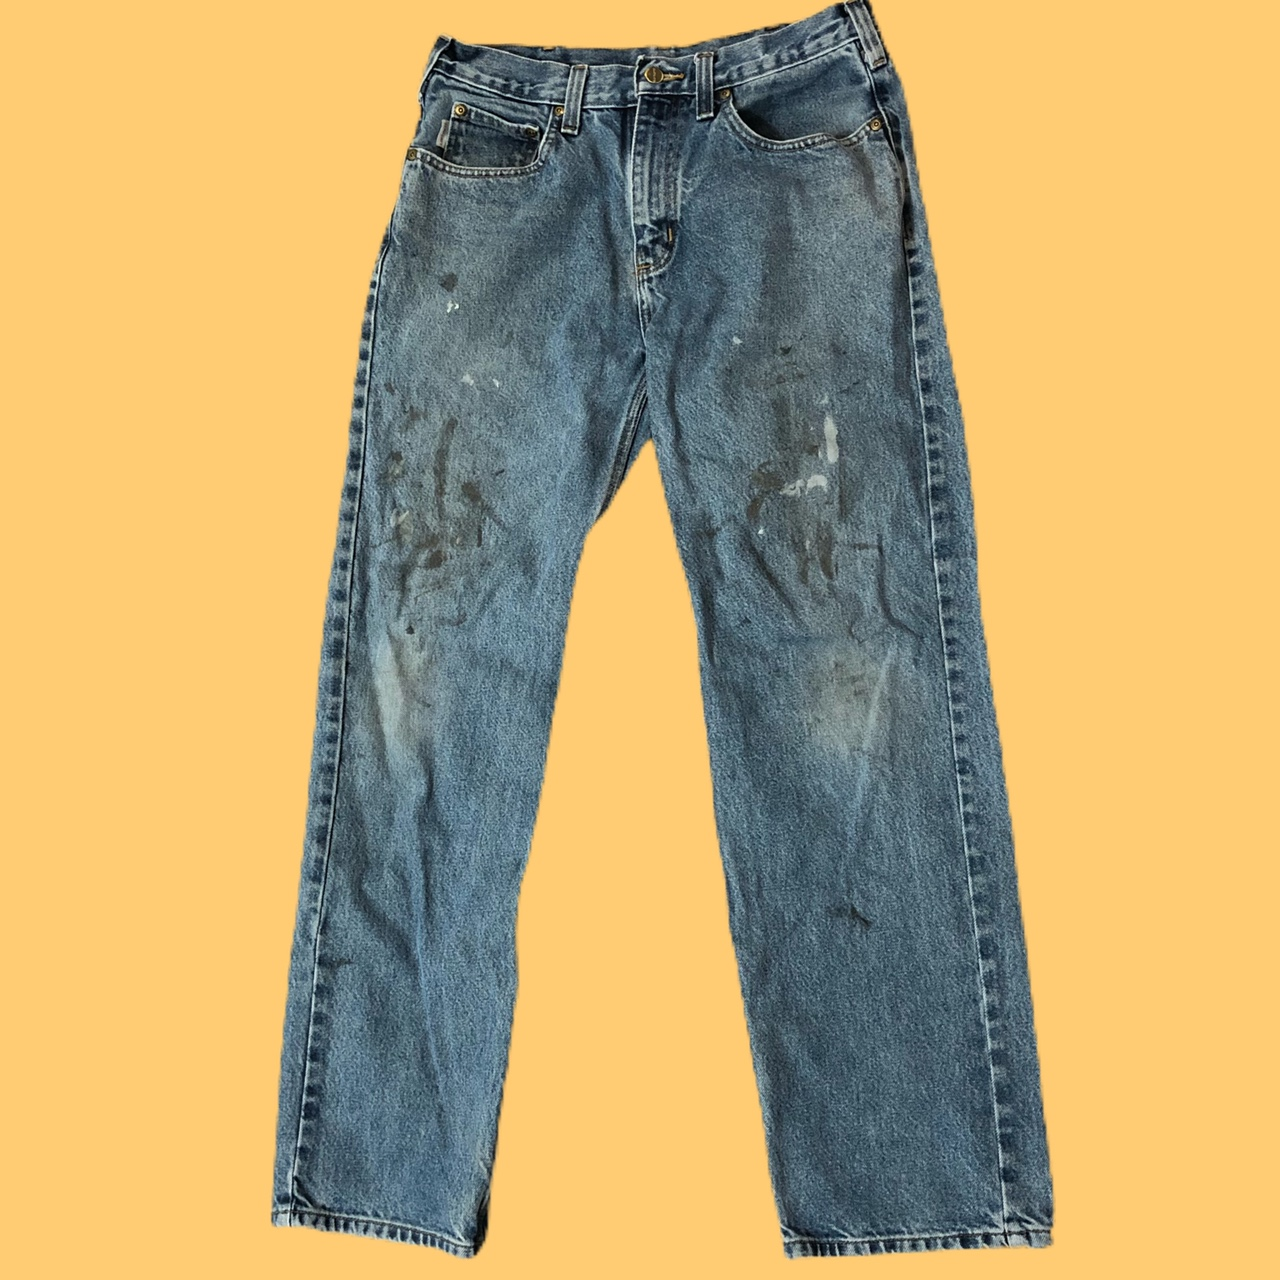 Product Image 1 - 🔥🚧CARHARTT JEANS🚧🔥 -Nice blue wash -Tagged 33x32